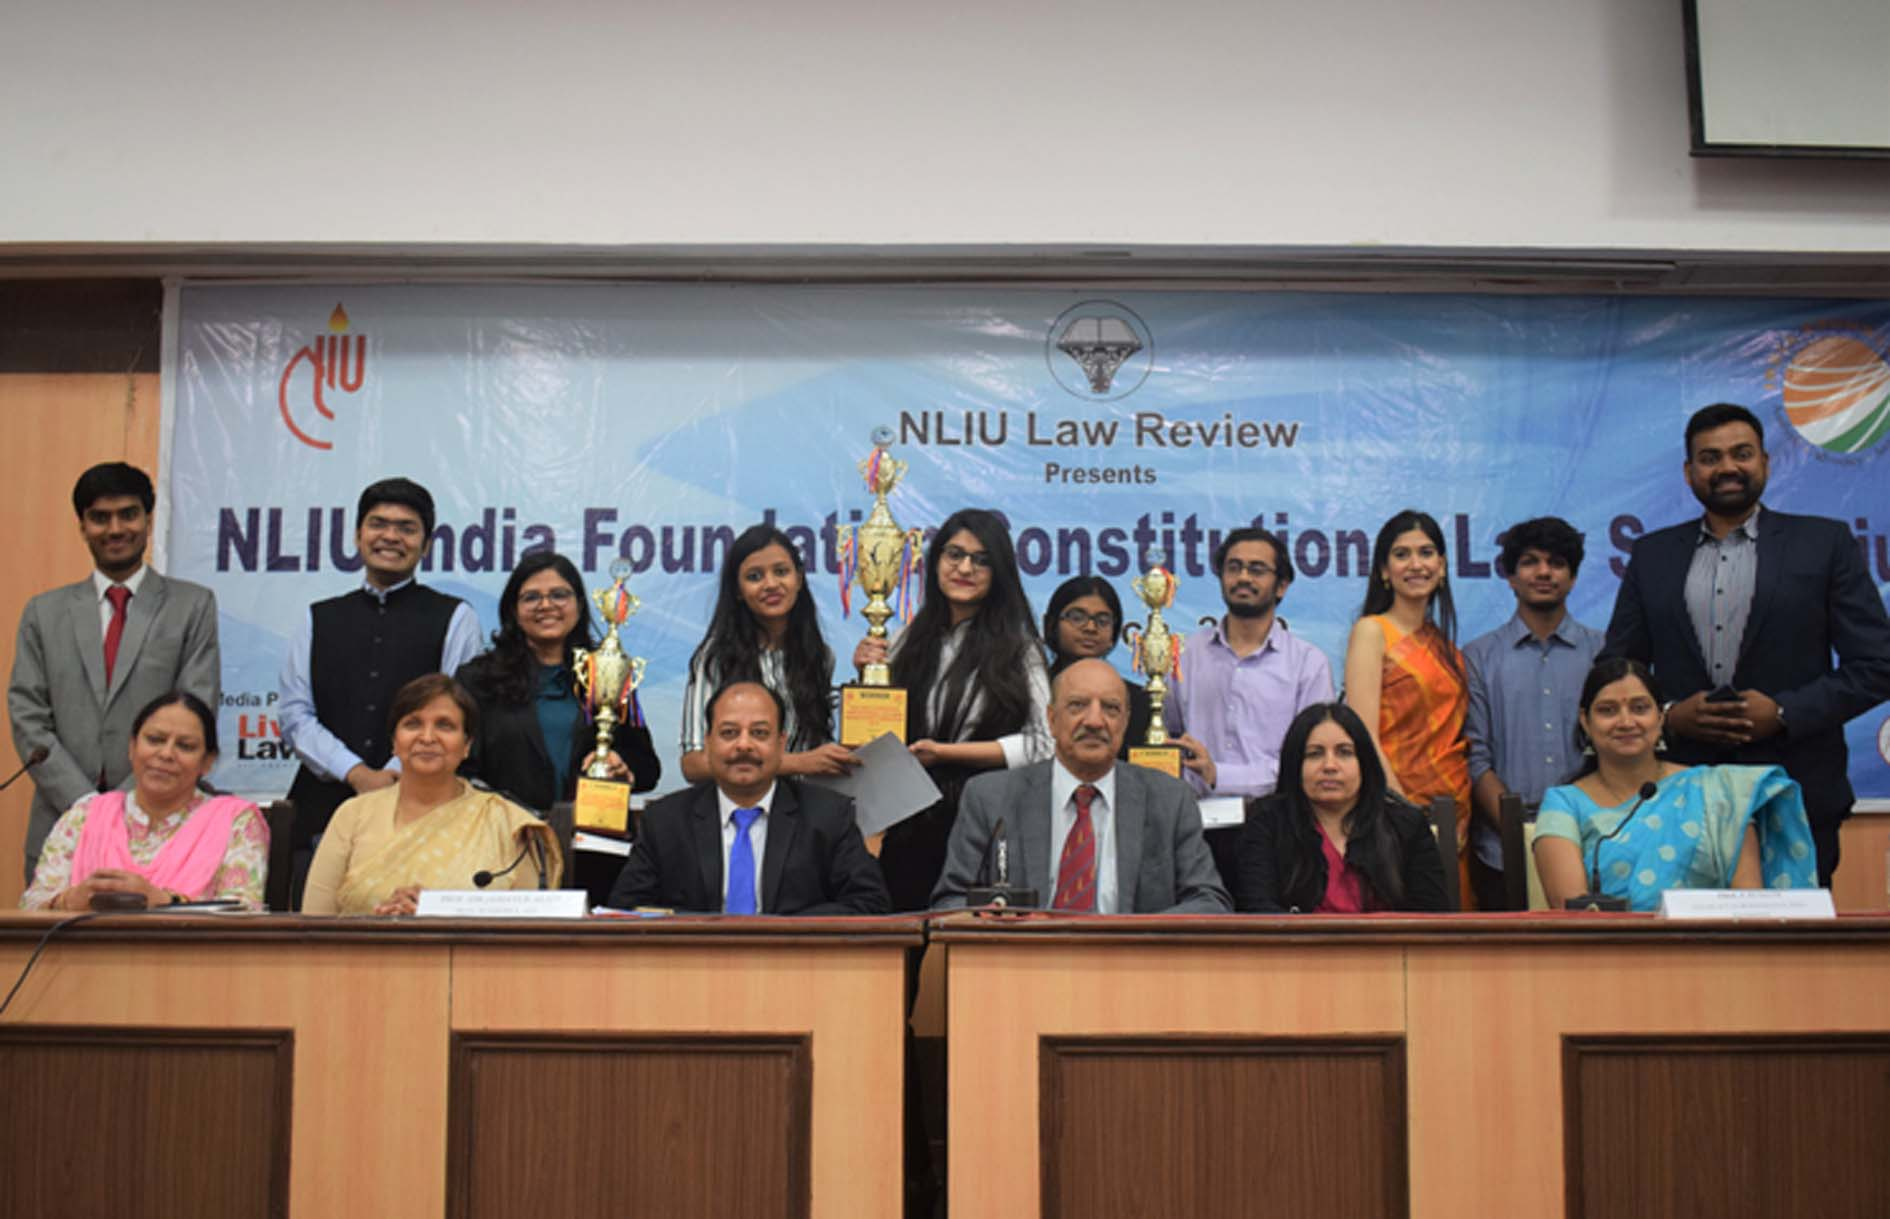 NLIU-India Foundation Constitutional Law Symposium